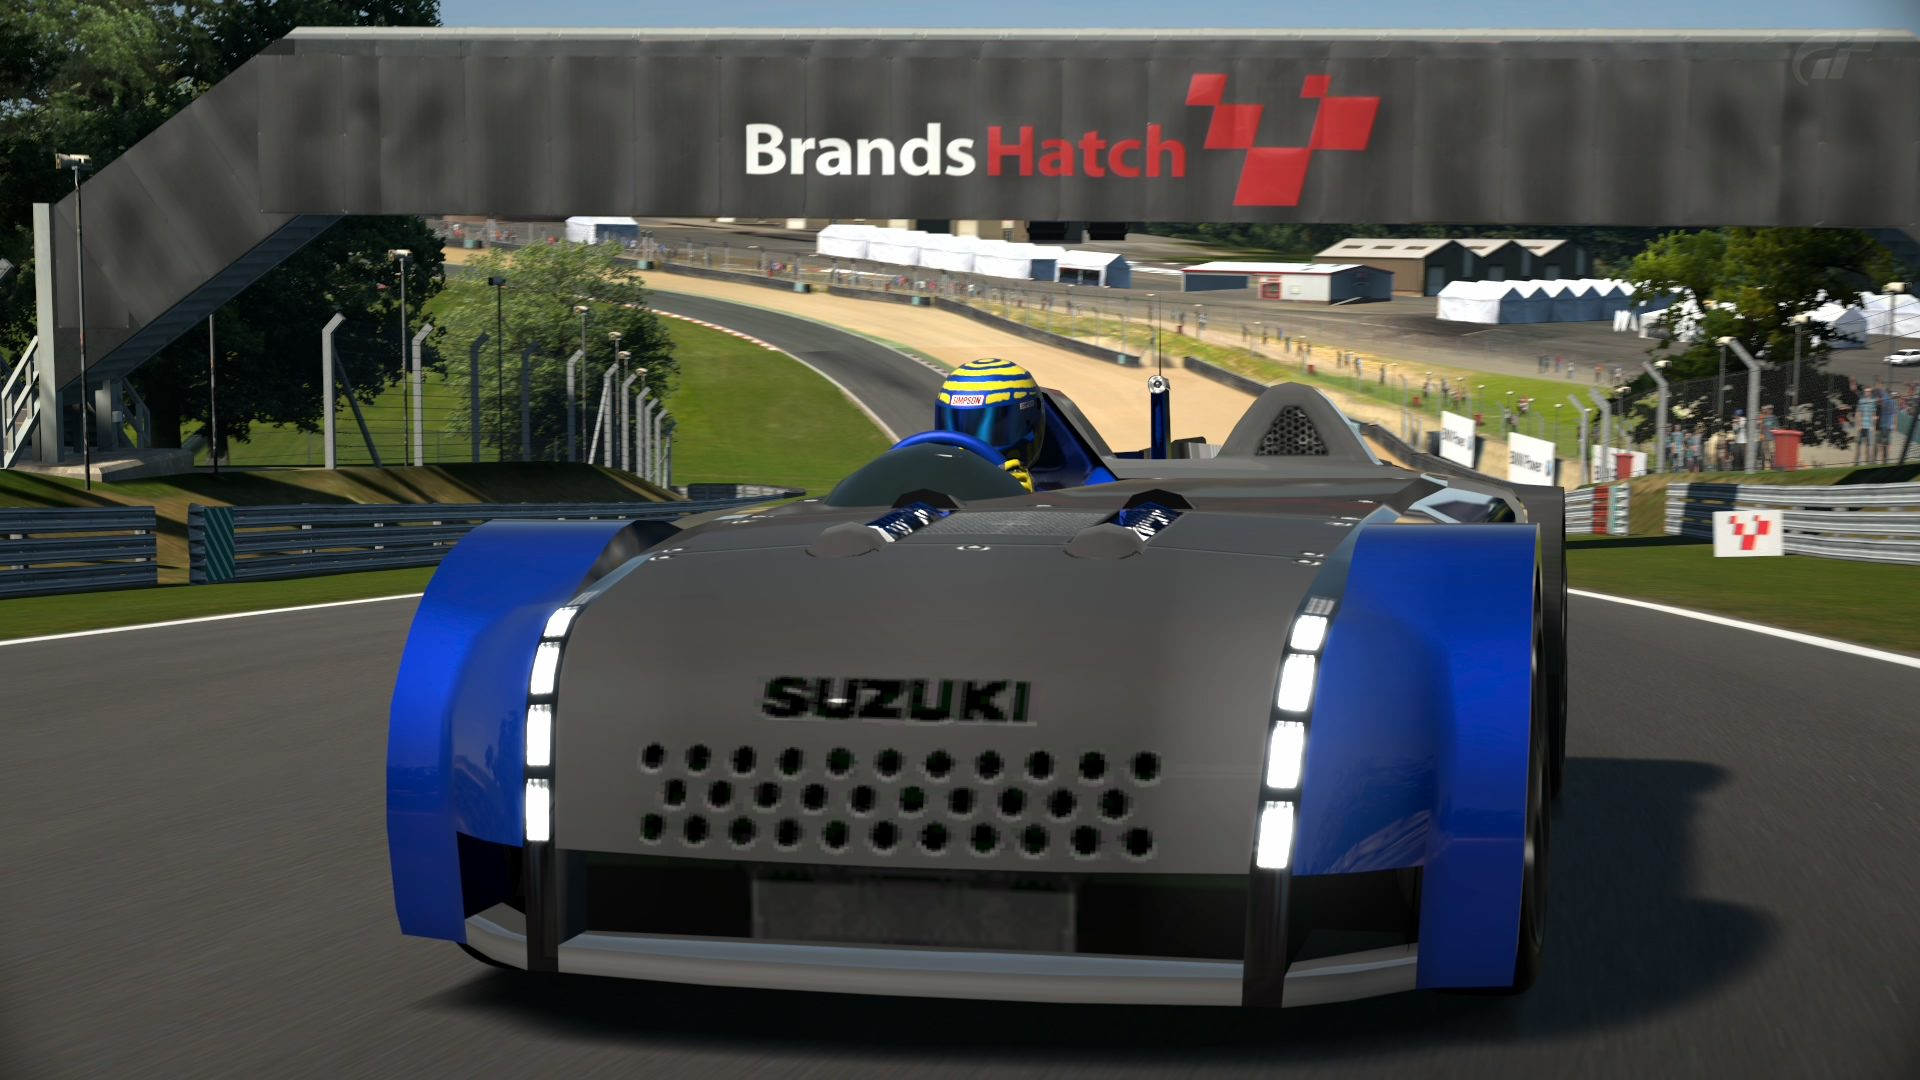 Brands Hatch Grand Prix Circuit_1.jpg